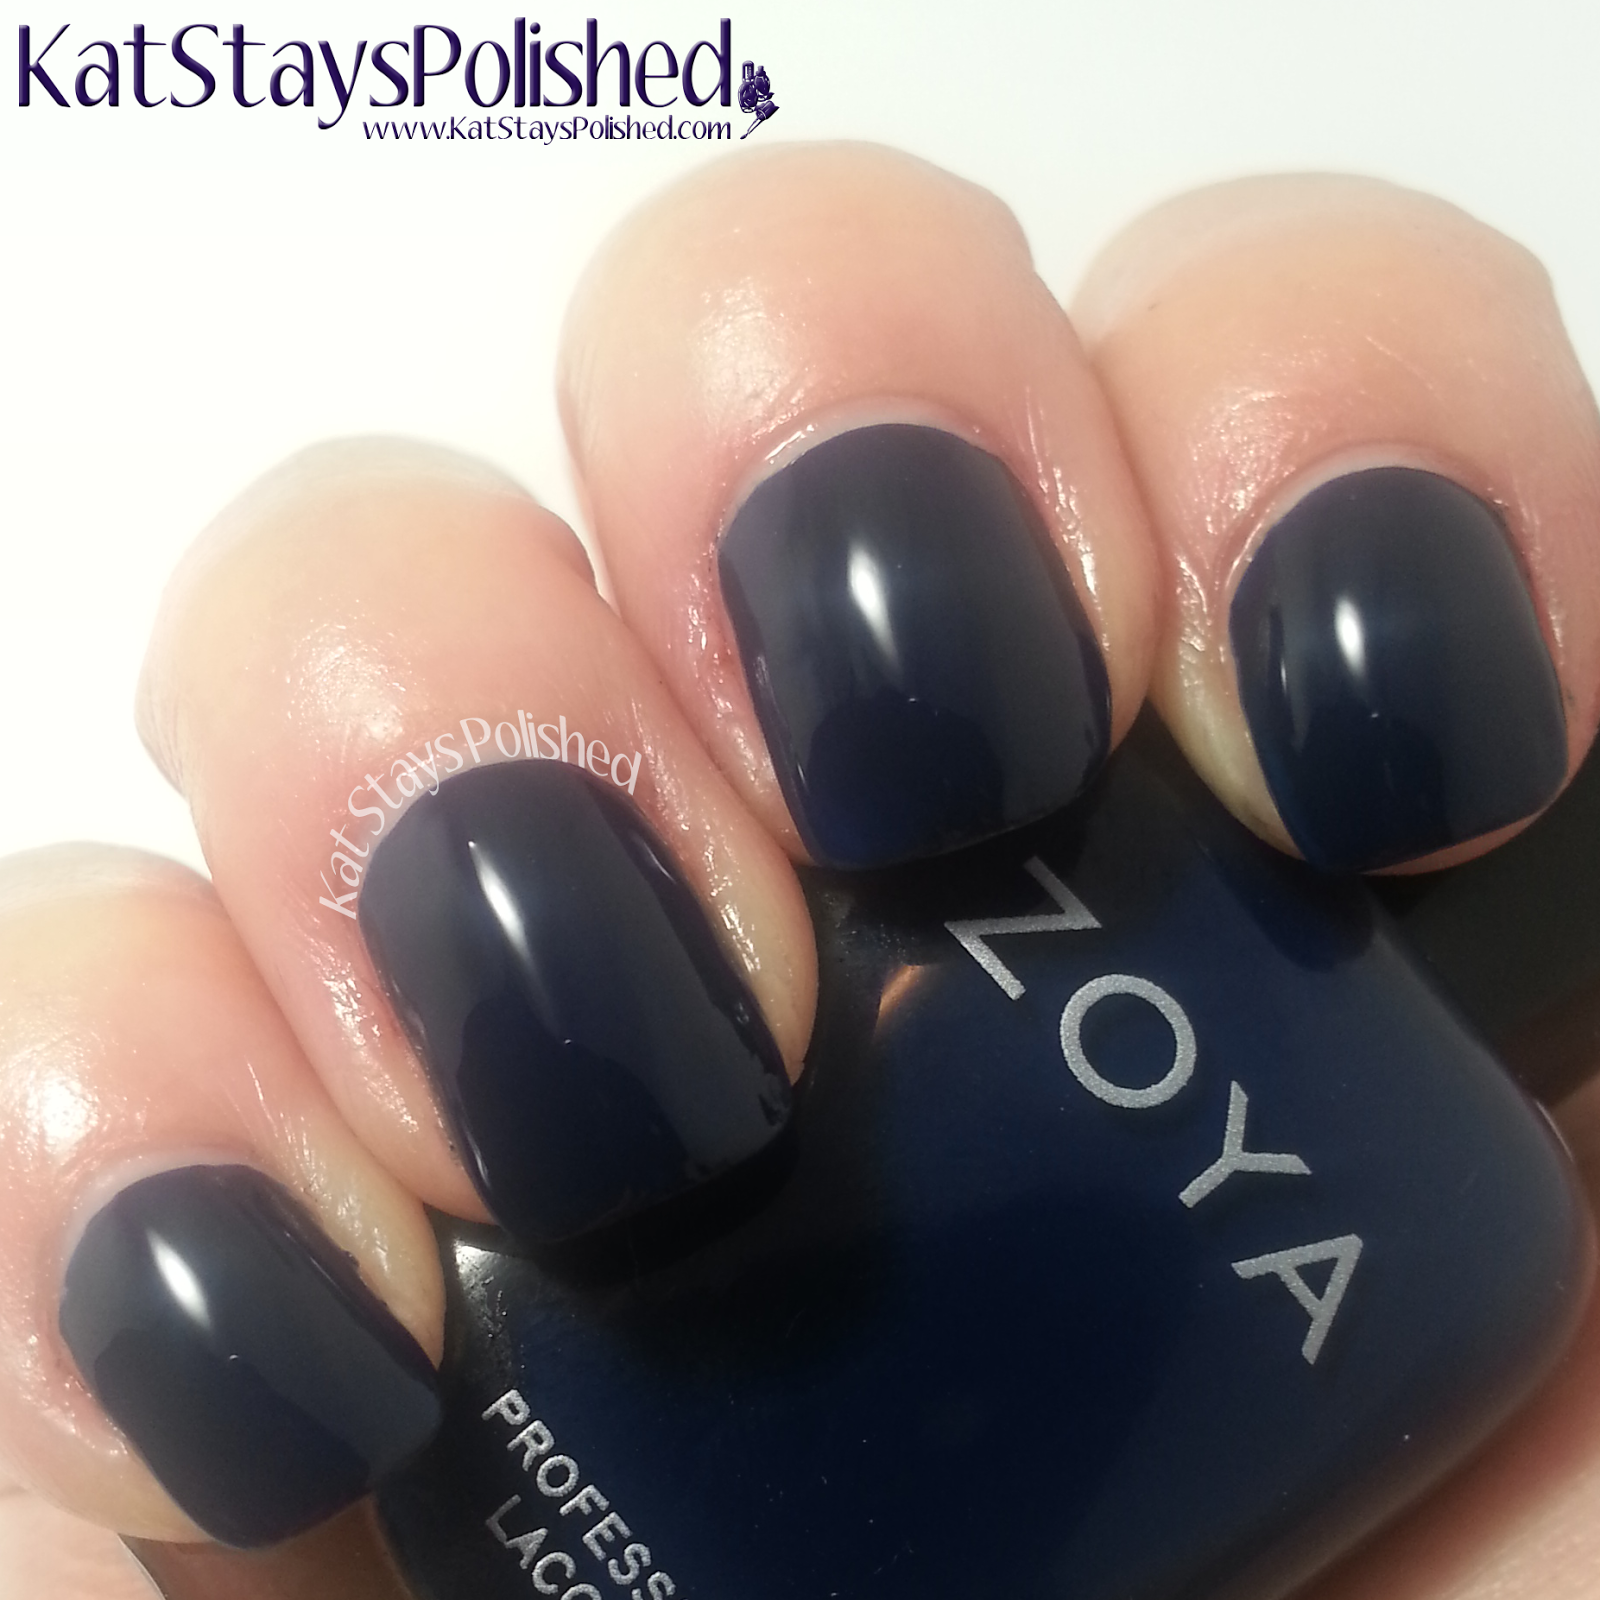 Zoya Entice 2014 - Ryan | Kat Stays Polished